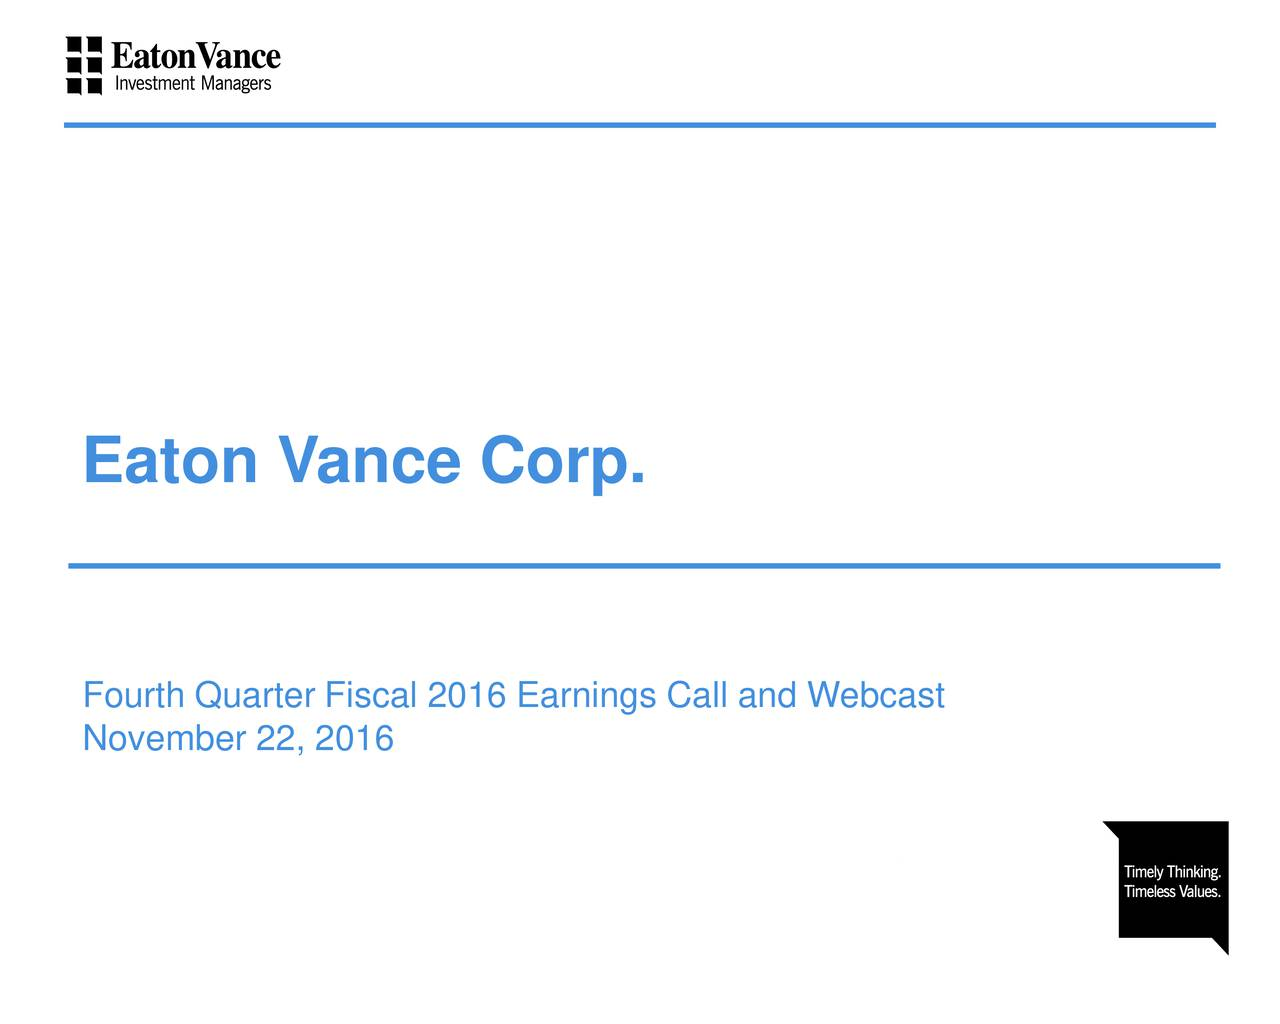 Fourth Quarter Fiscal 2016 Earnings Call and Webcast November 22, 2016